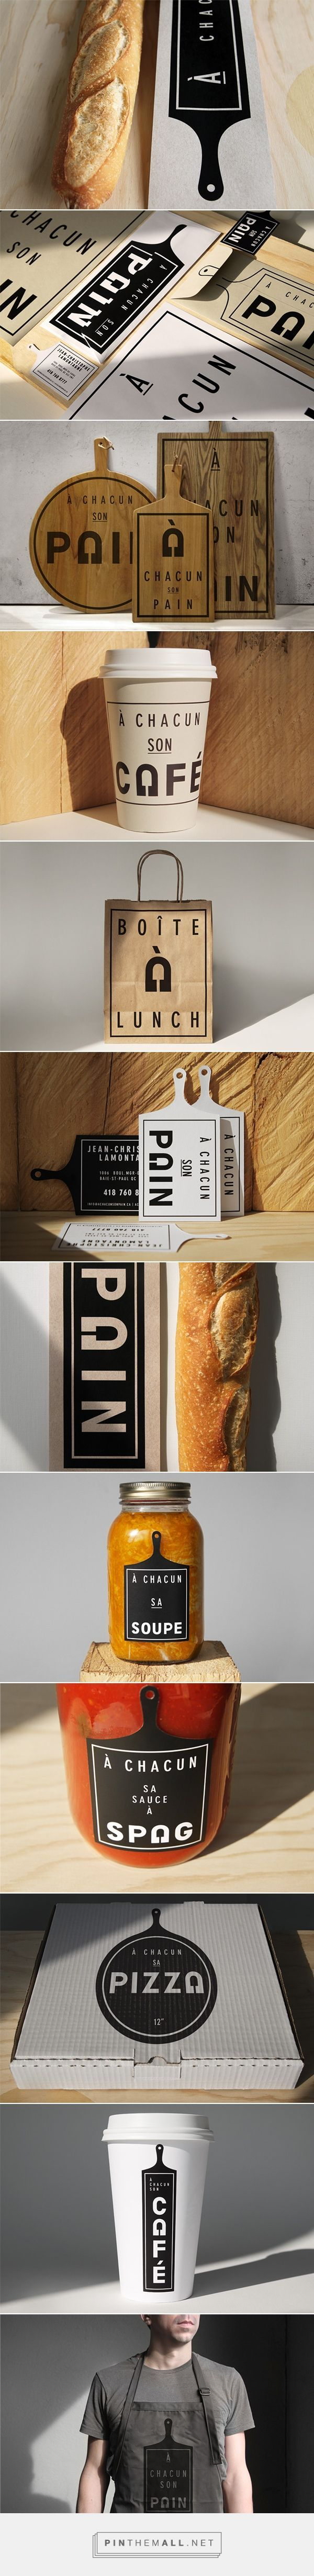 best images about packaging on pinterest dog show la web and